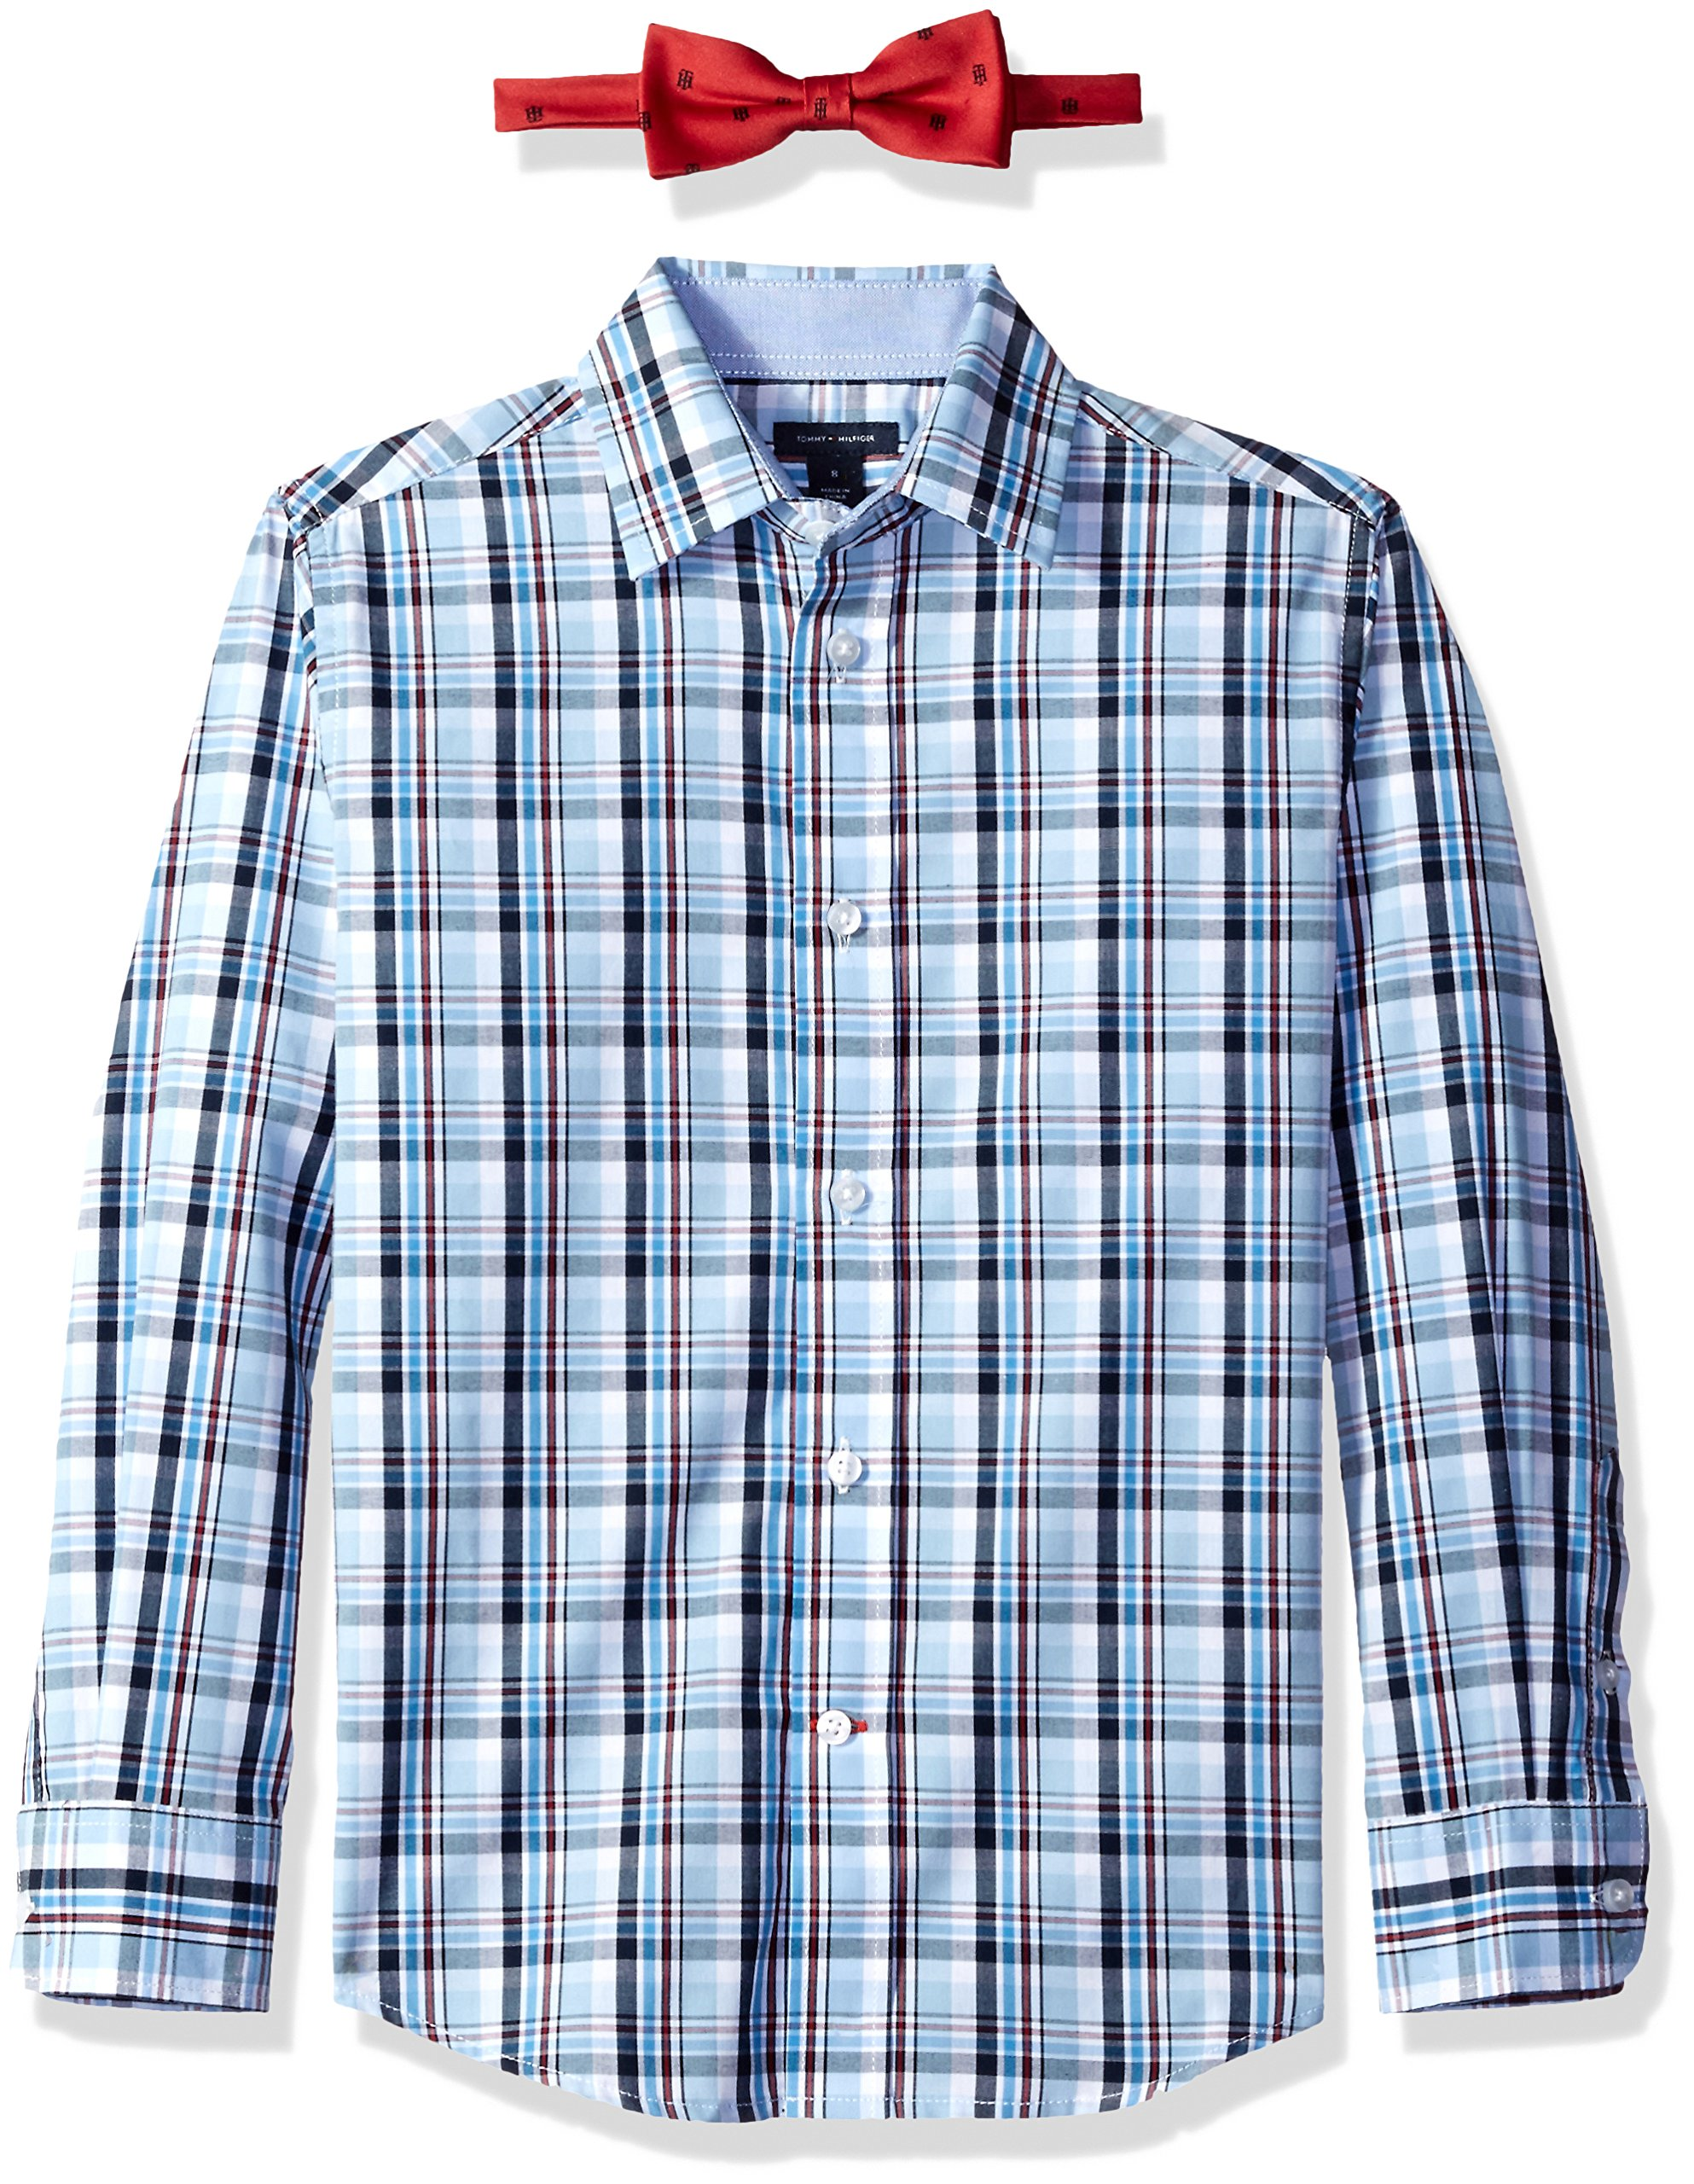 Tommy Hilfiger Big Boys' Plaid Shirt with Bow Tie, Light Blue, 18 by Tommy Hilfiger (Image #2)